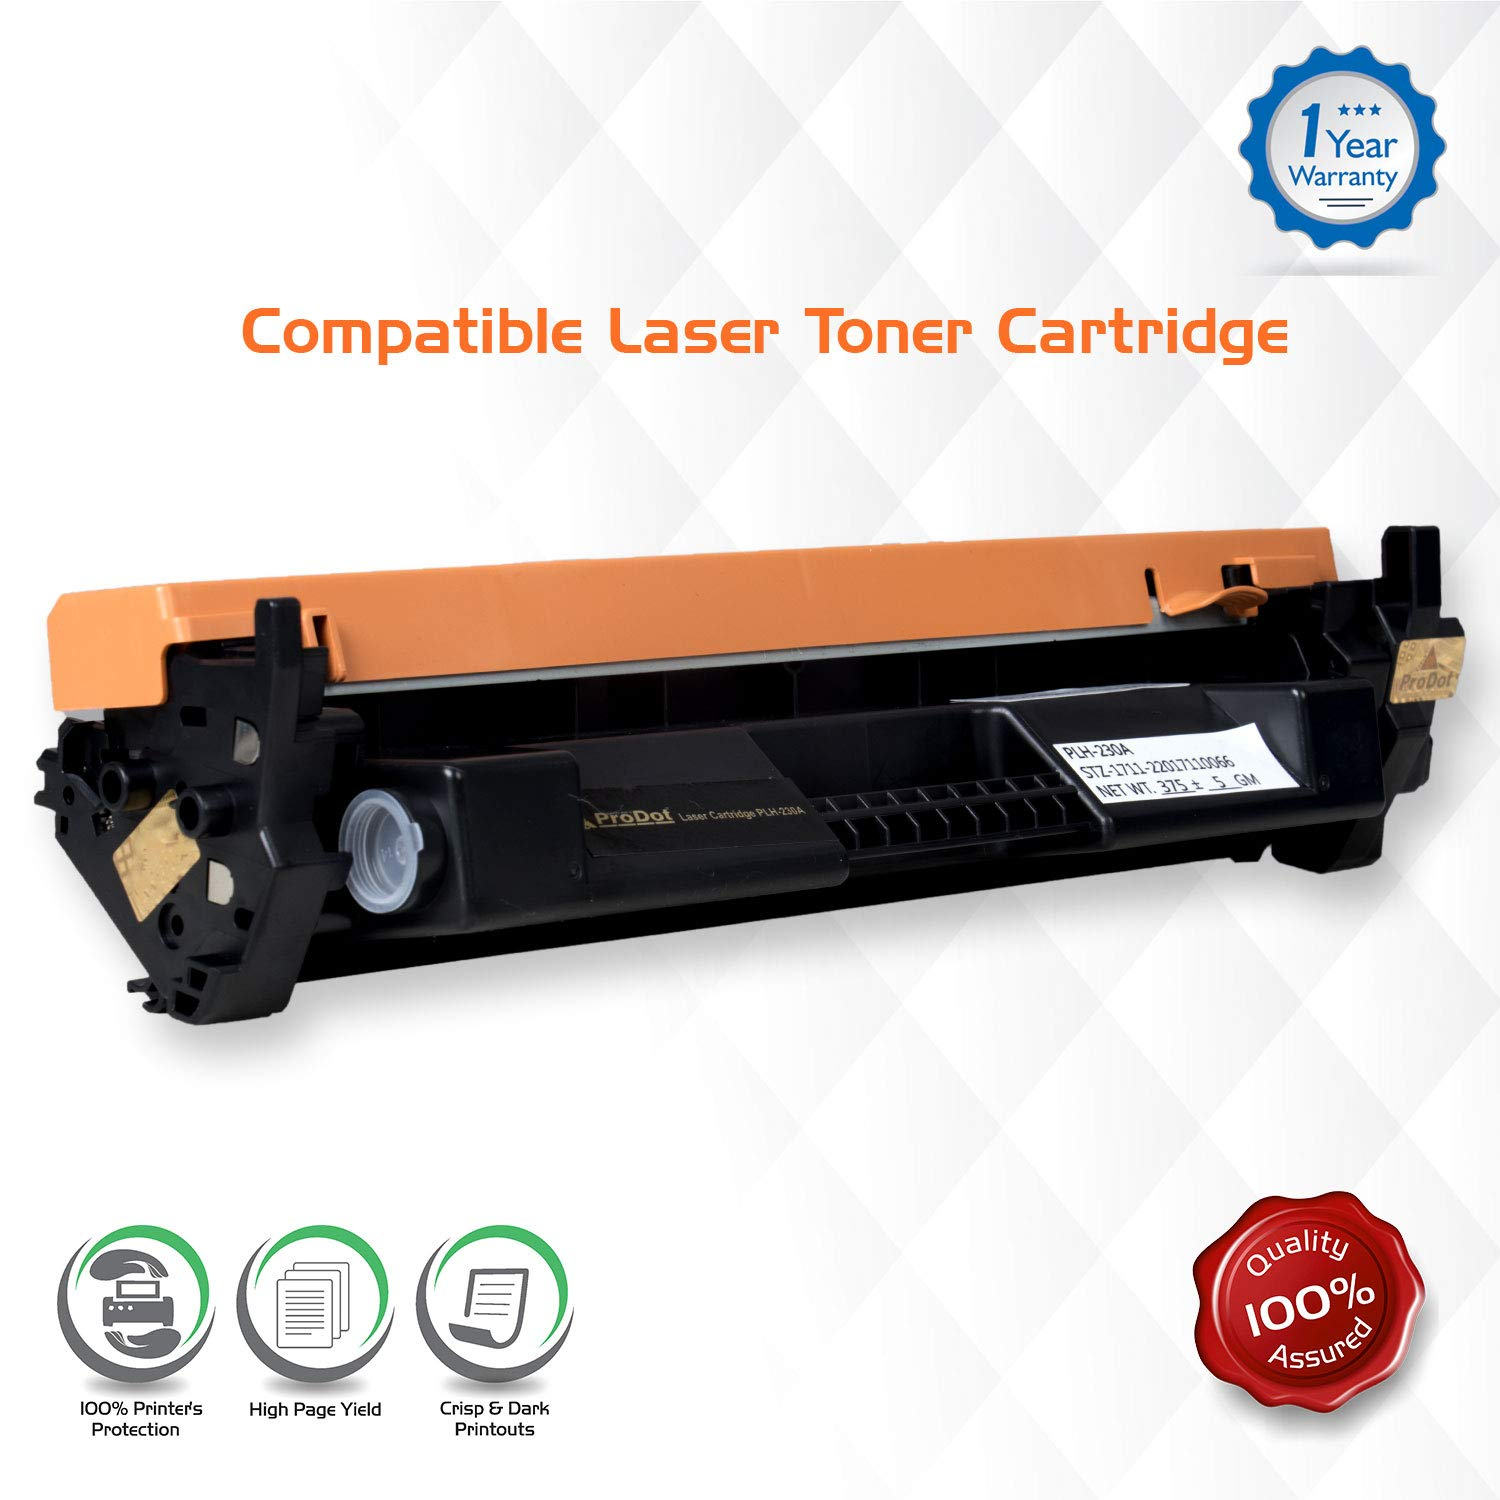 ProDot PLH-230 Compatible Laser Printer Toner Cartridge for HP 2